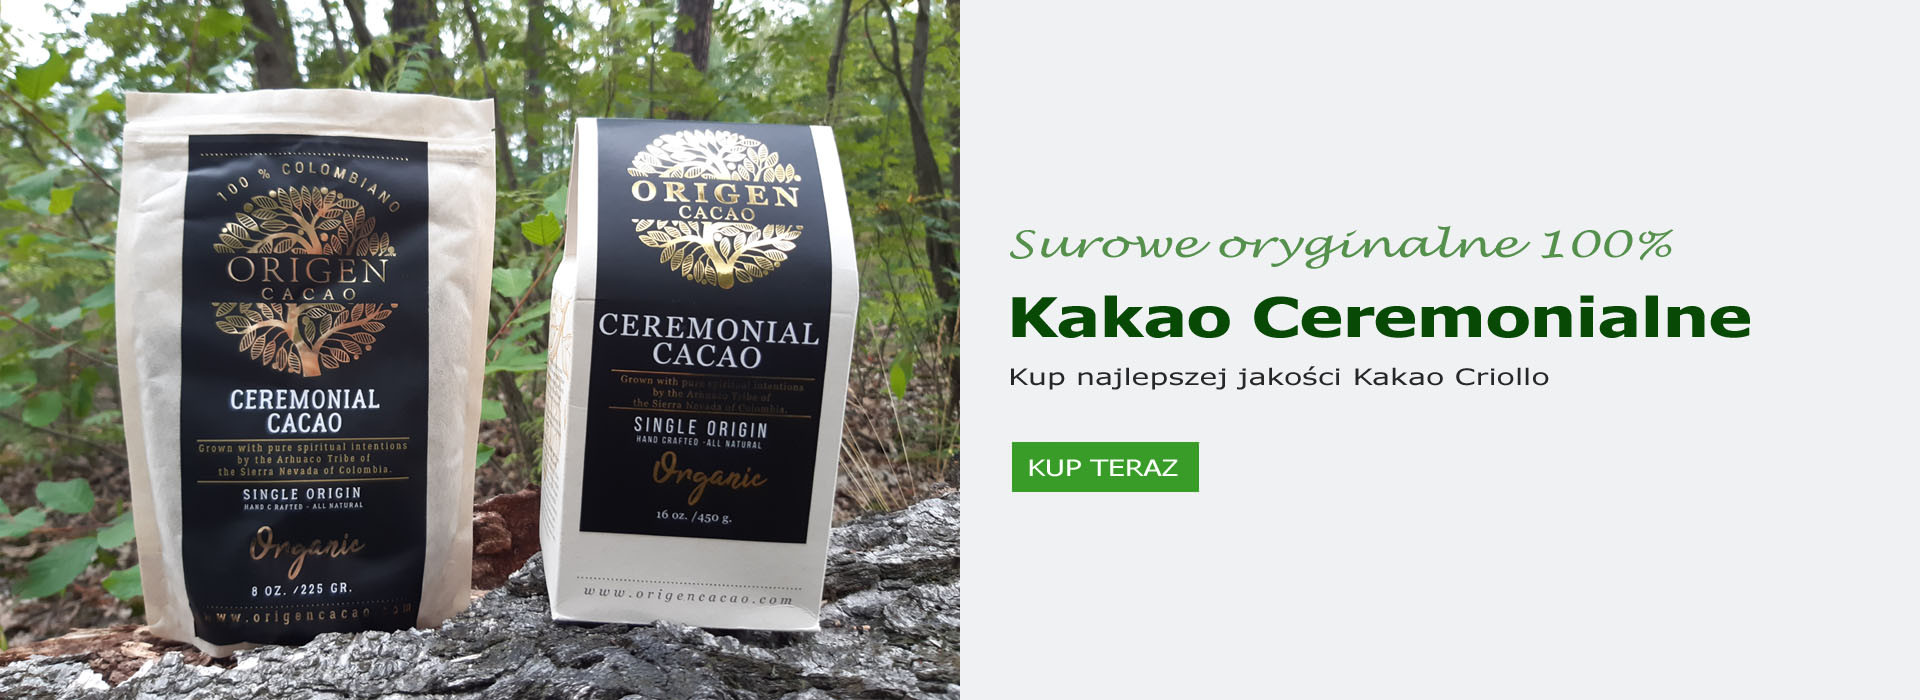 Kakao Ceremonialne 100%